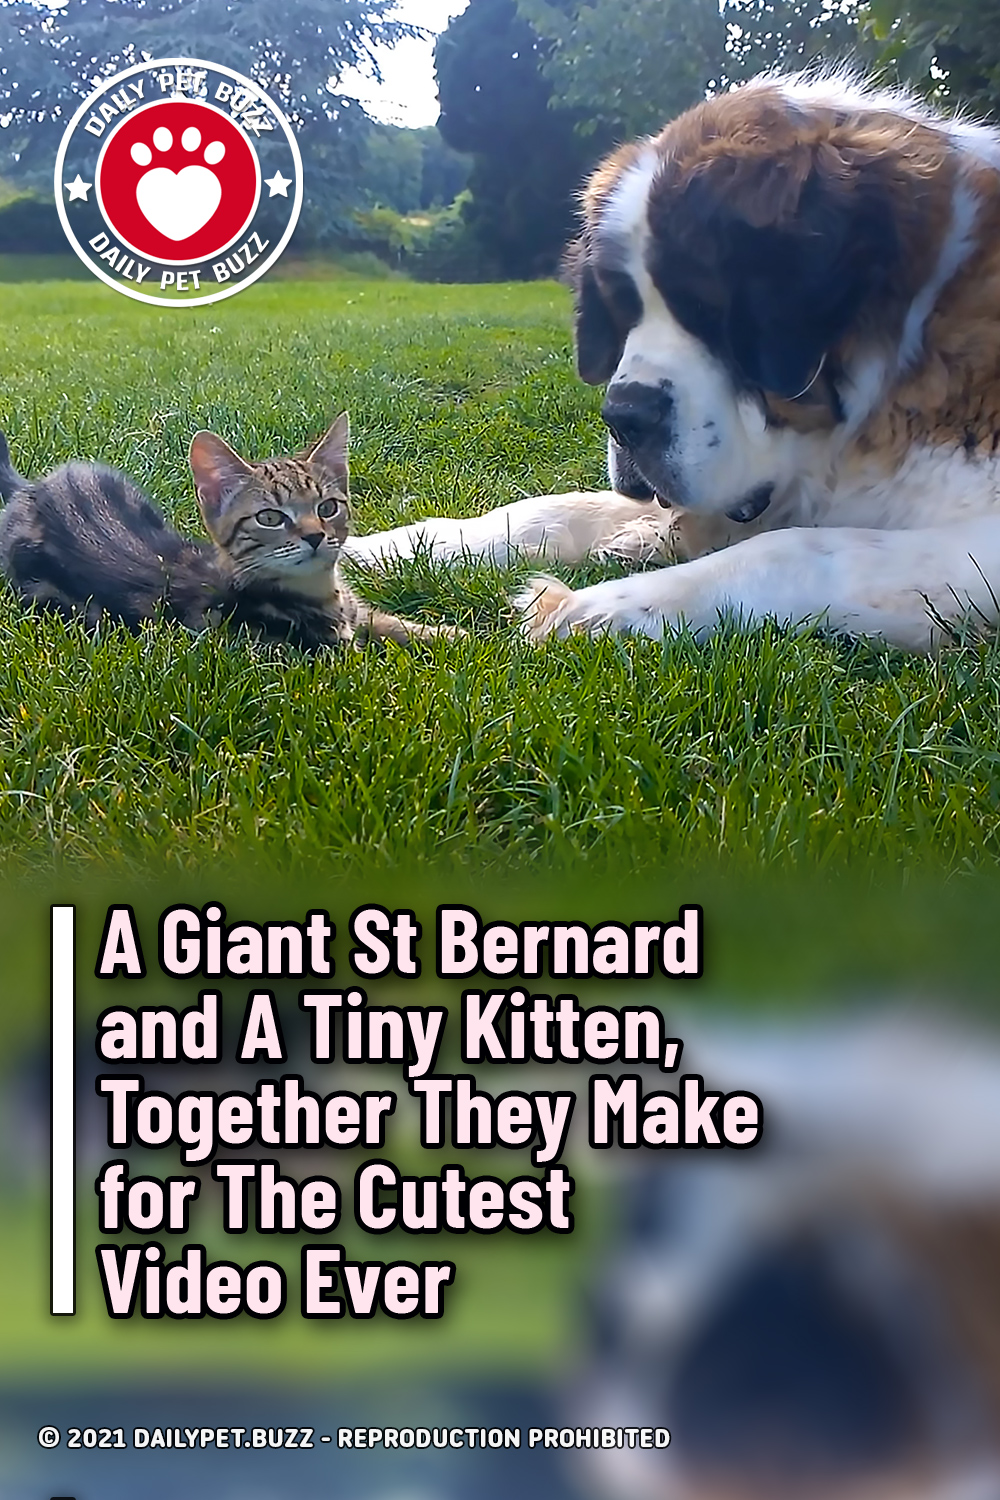 A Giant St Bernard and A Tiny Kitten, Together They Make for The Cutest Video Ever